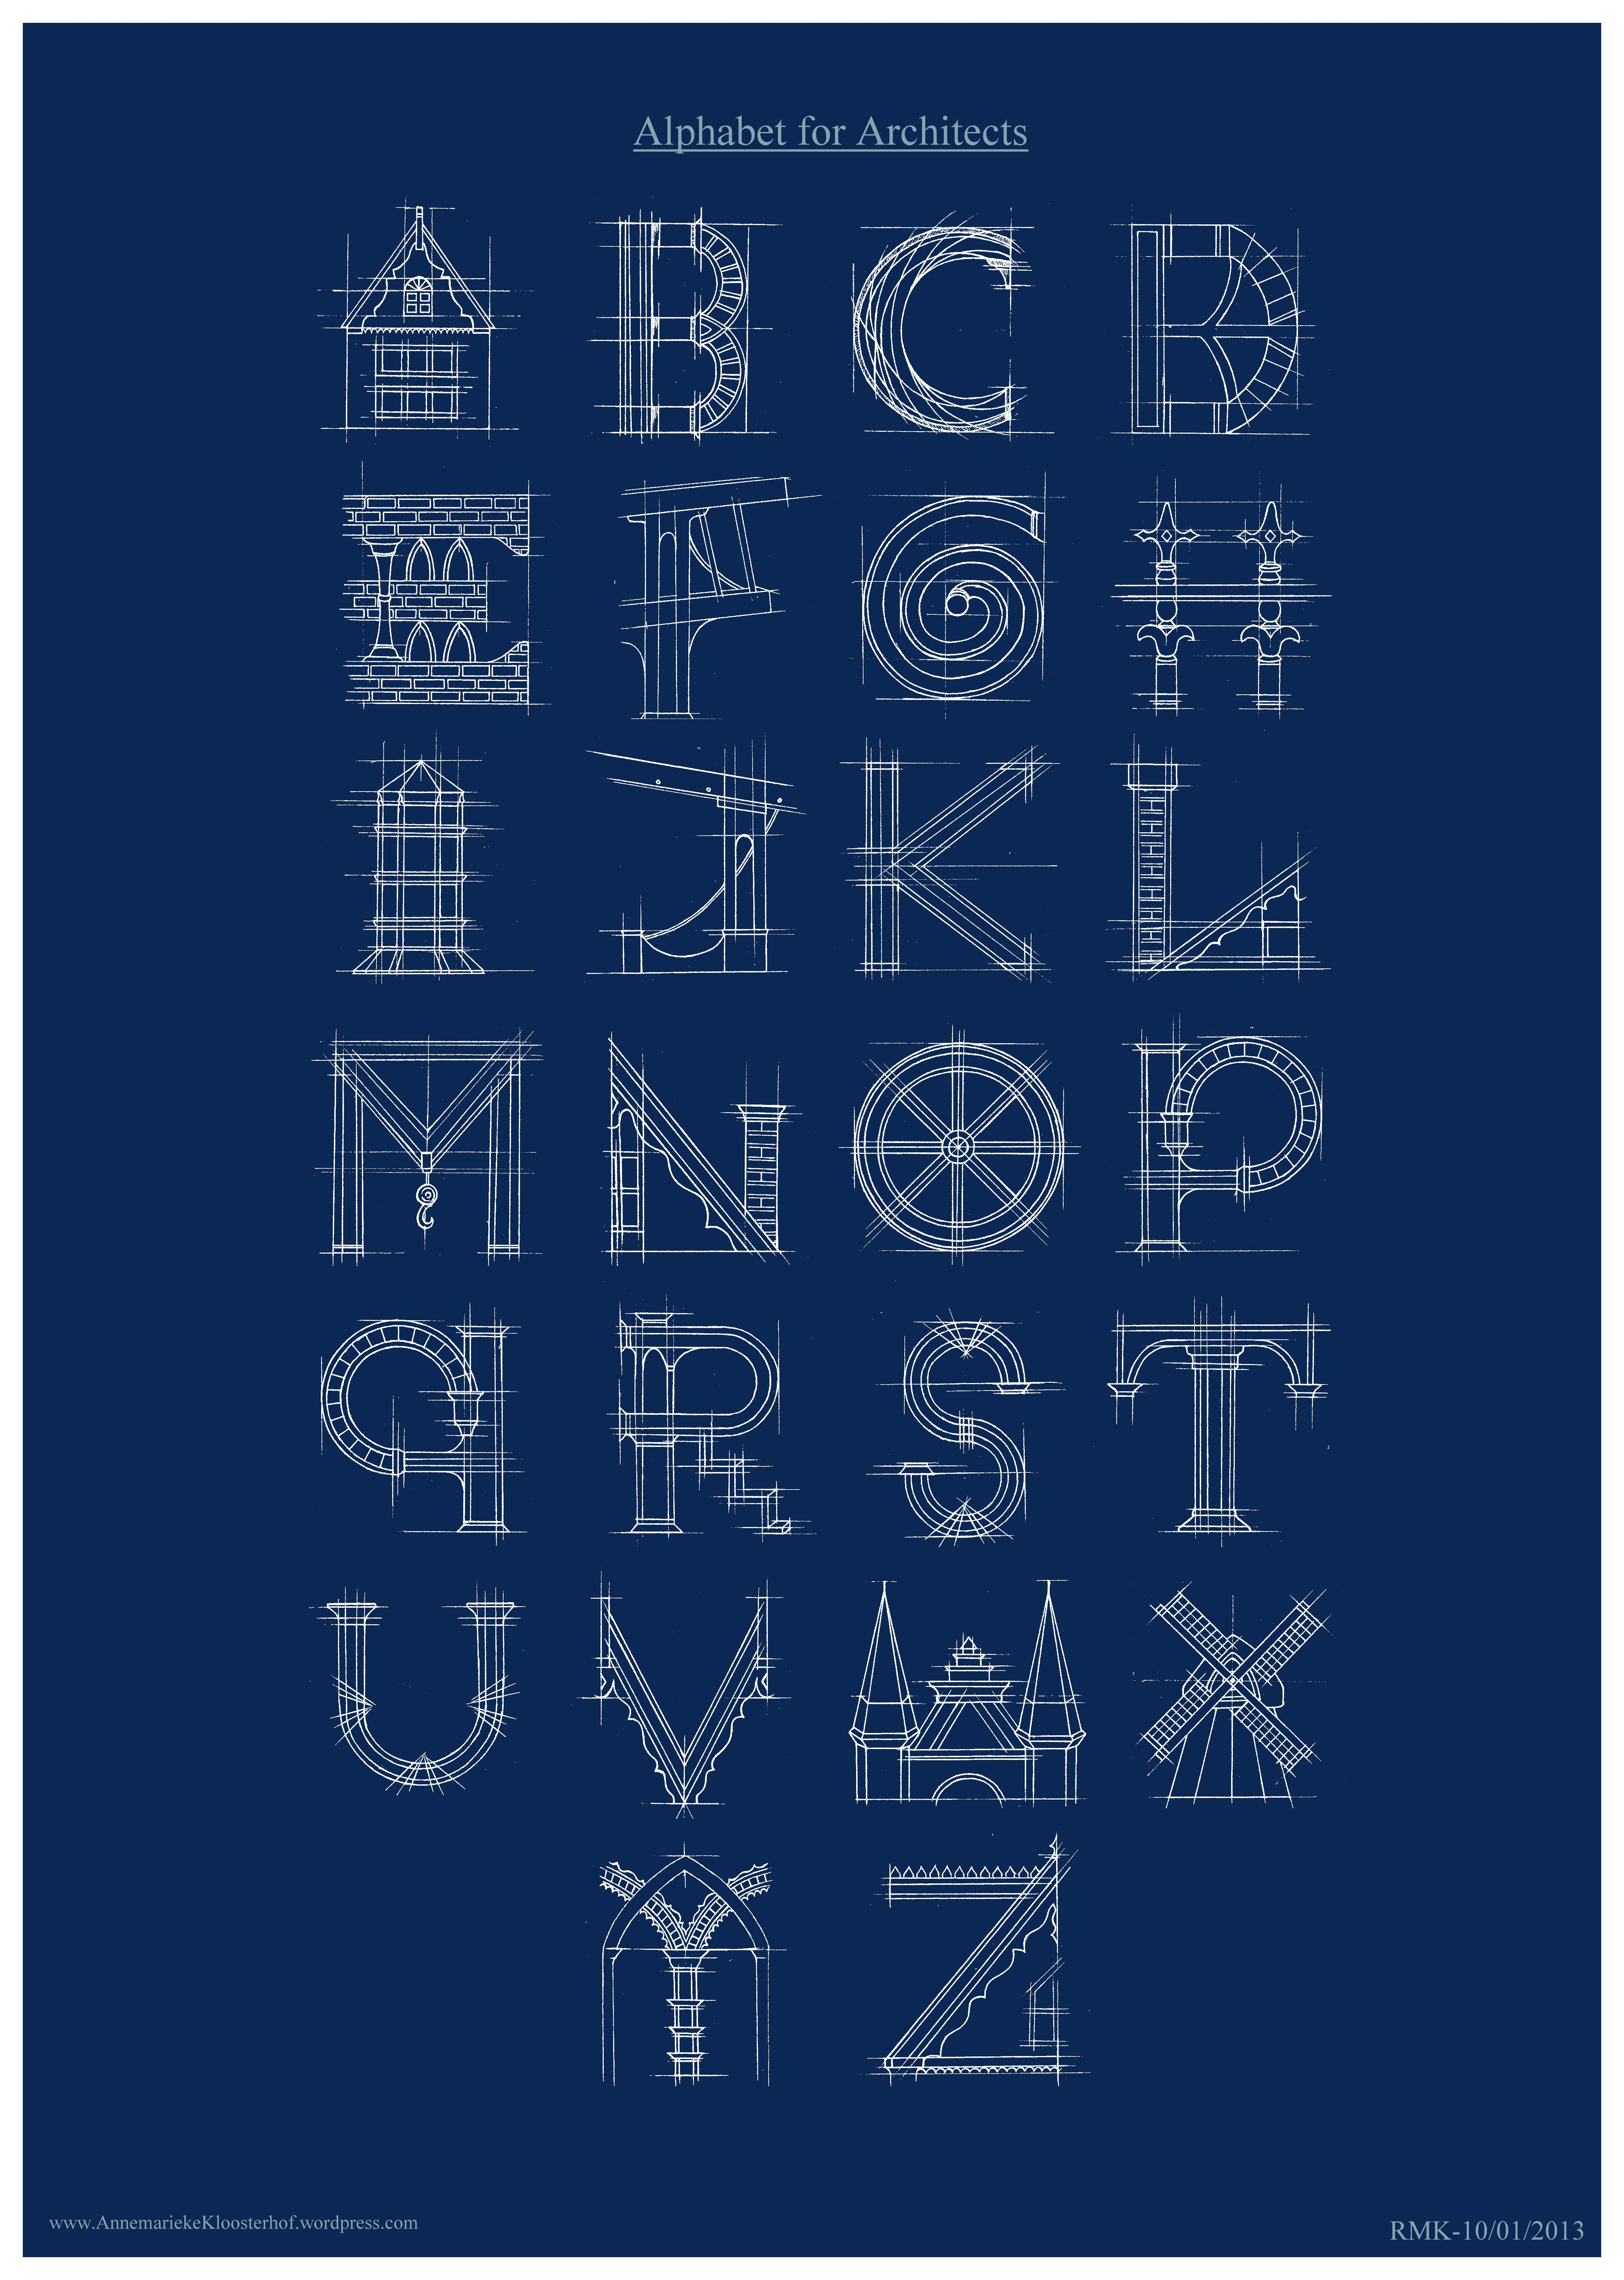 Blueprint typography for Blueprint architects